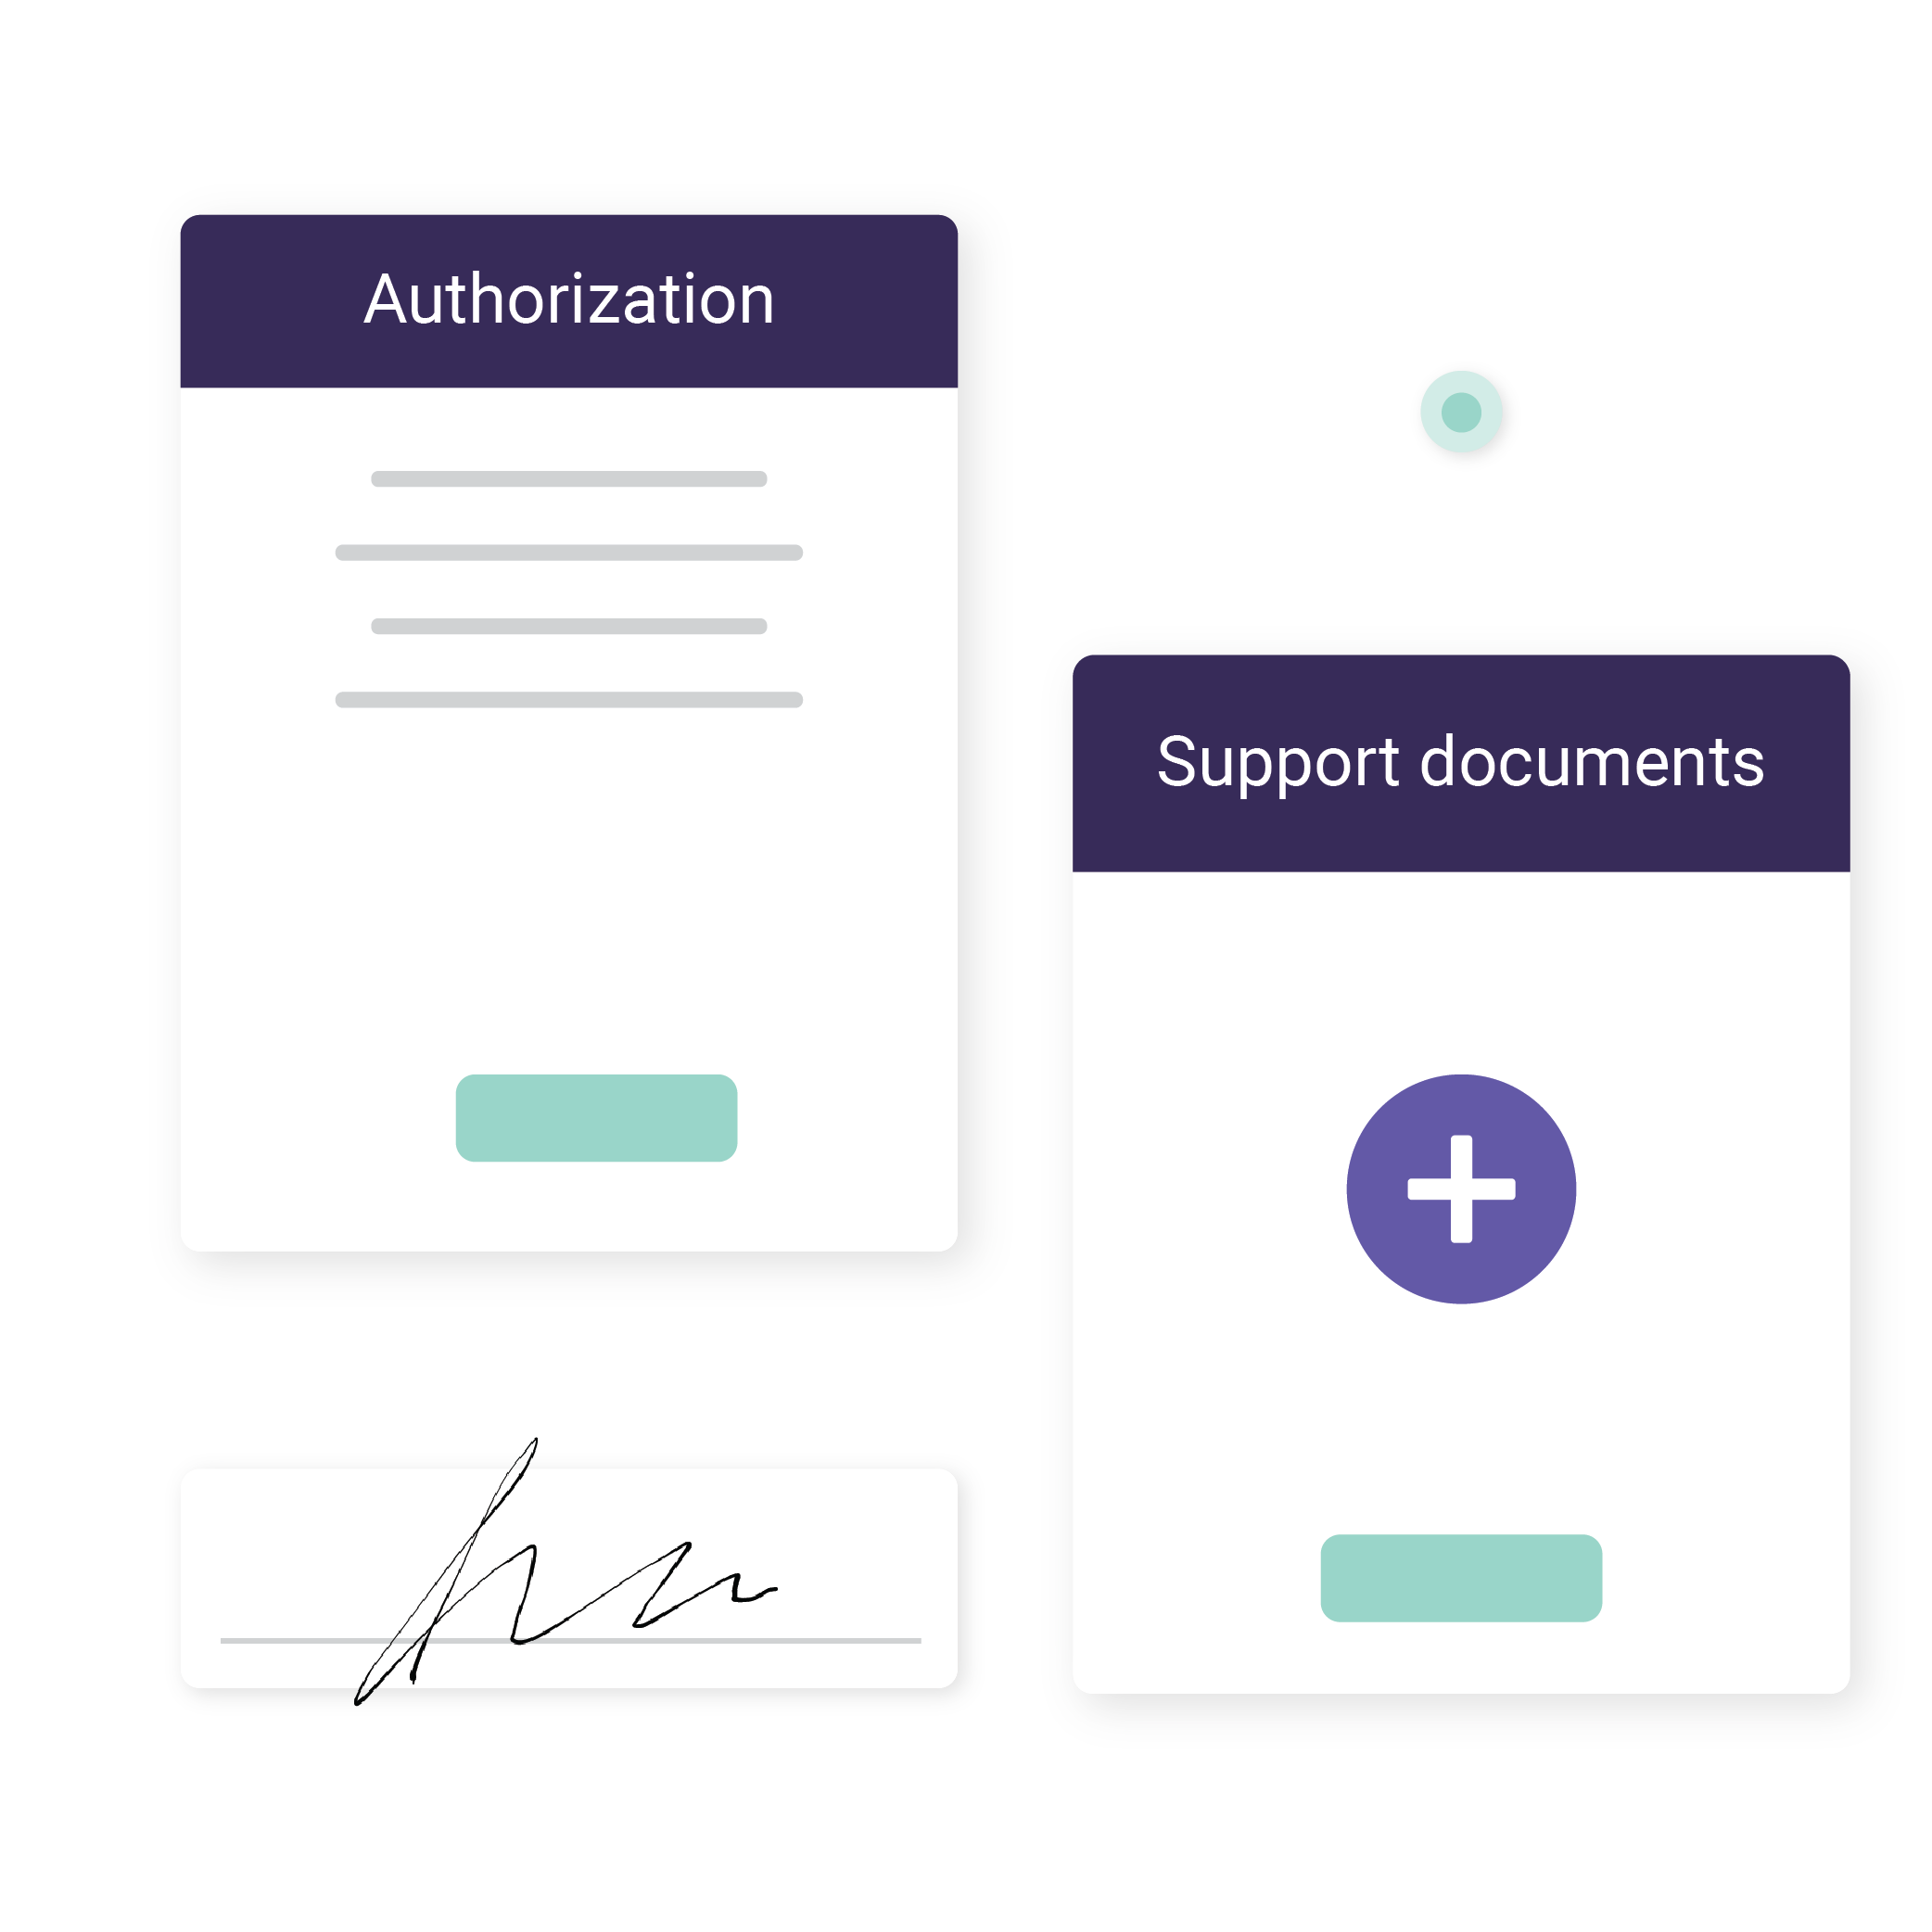 Authorization and Support Documents